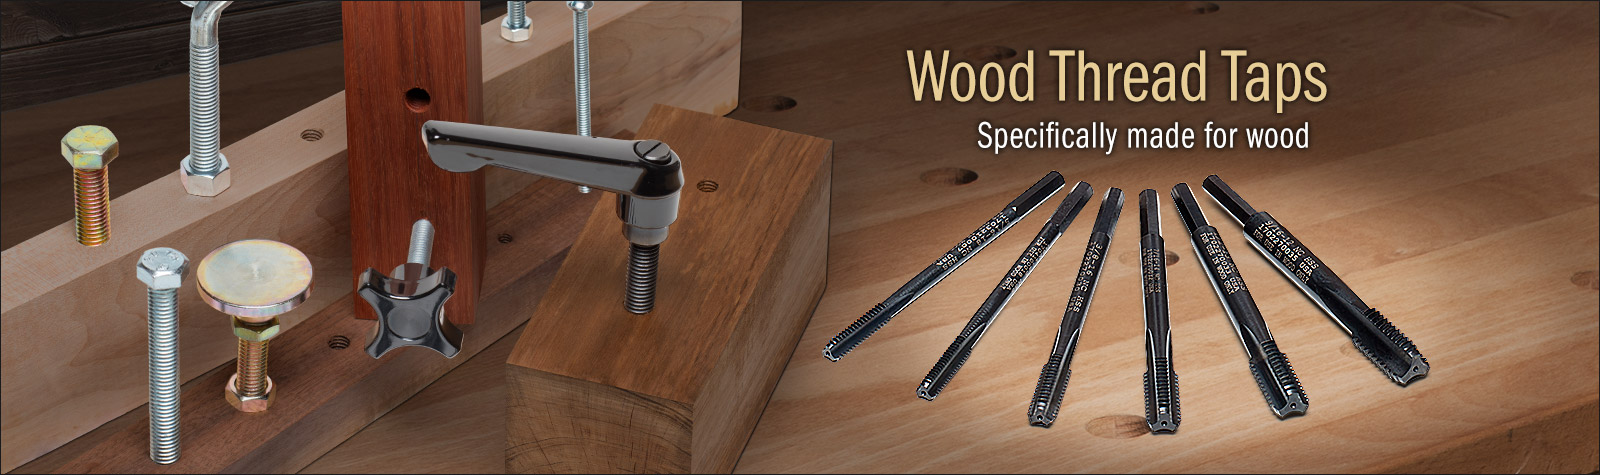 Woodworking Thread Taps